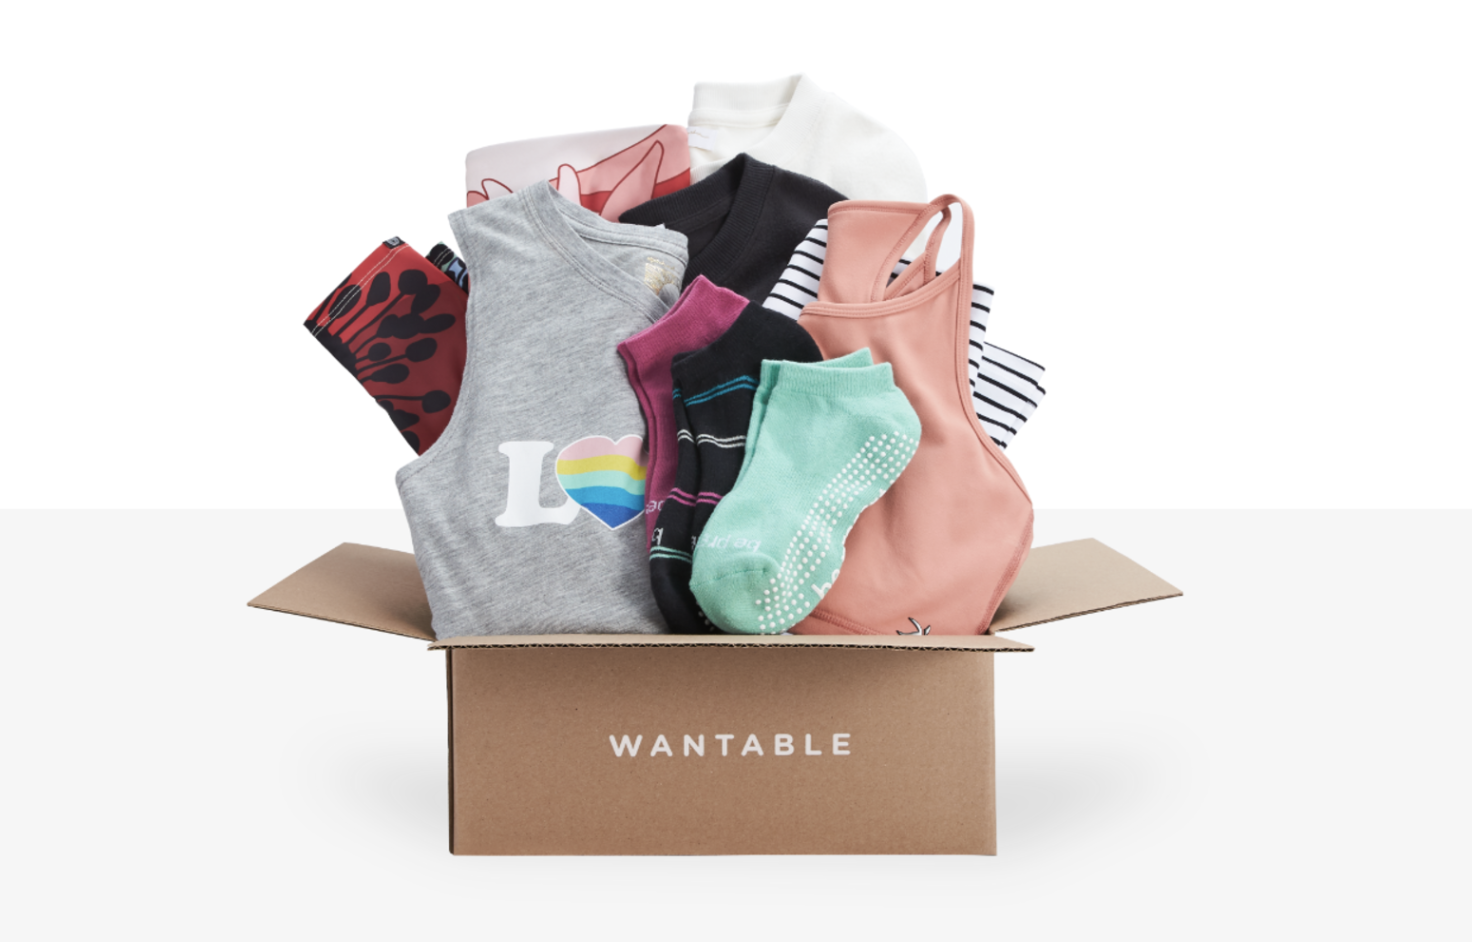 Wantable subscription box with mint green active leggings, pink tank top, and gray tank